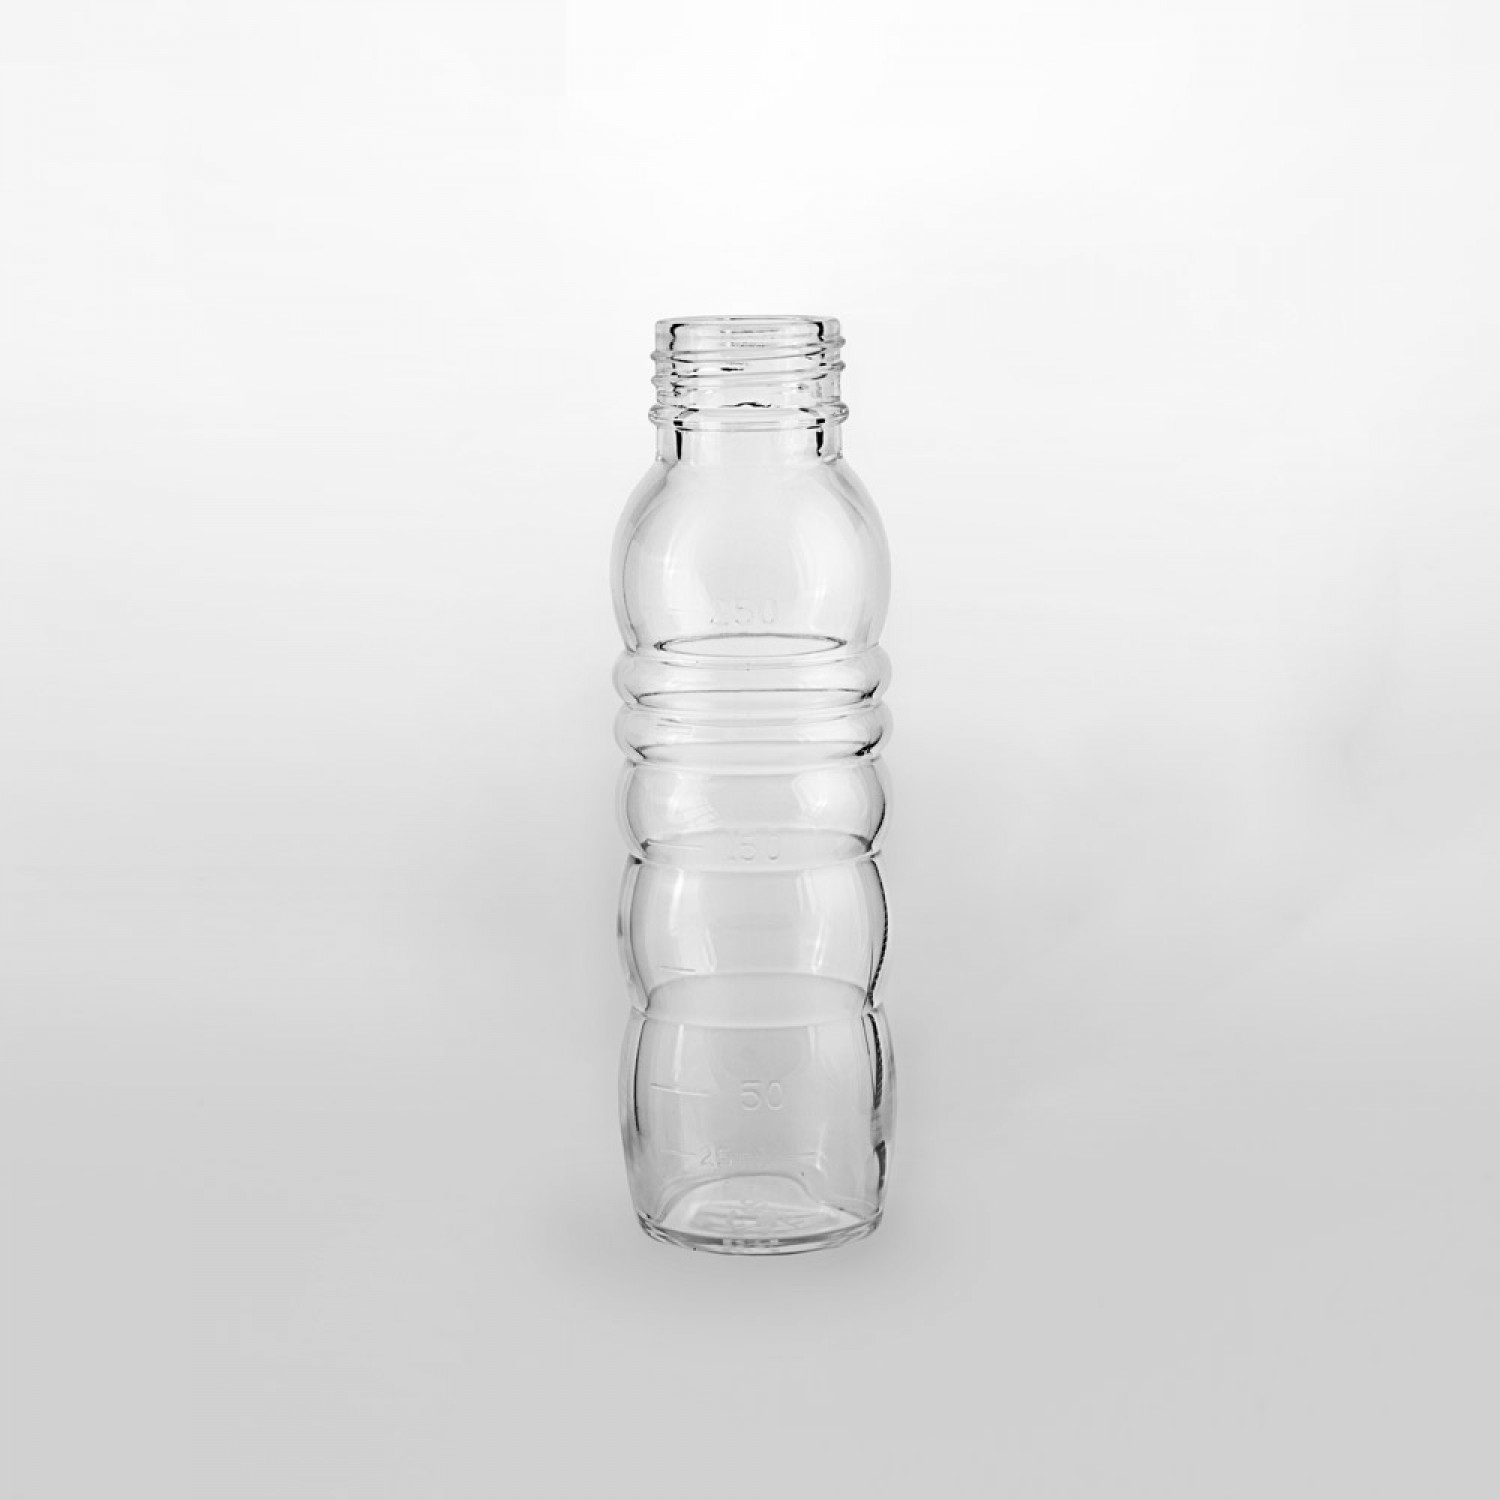 Nature's Design spare glass bottle for THANK YOU wide opening